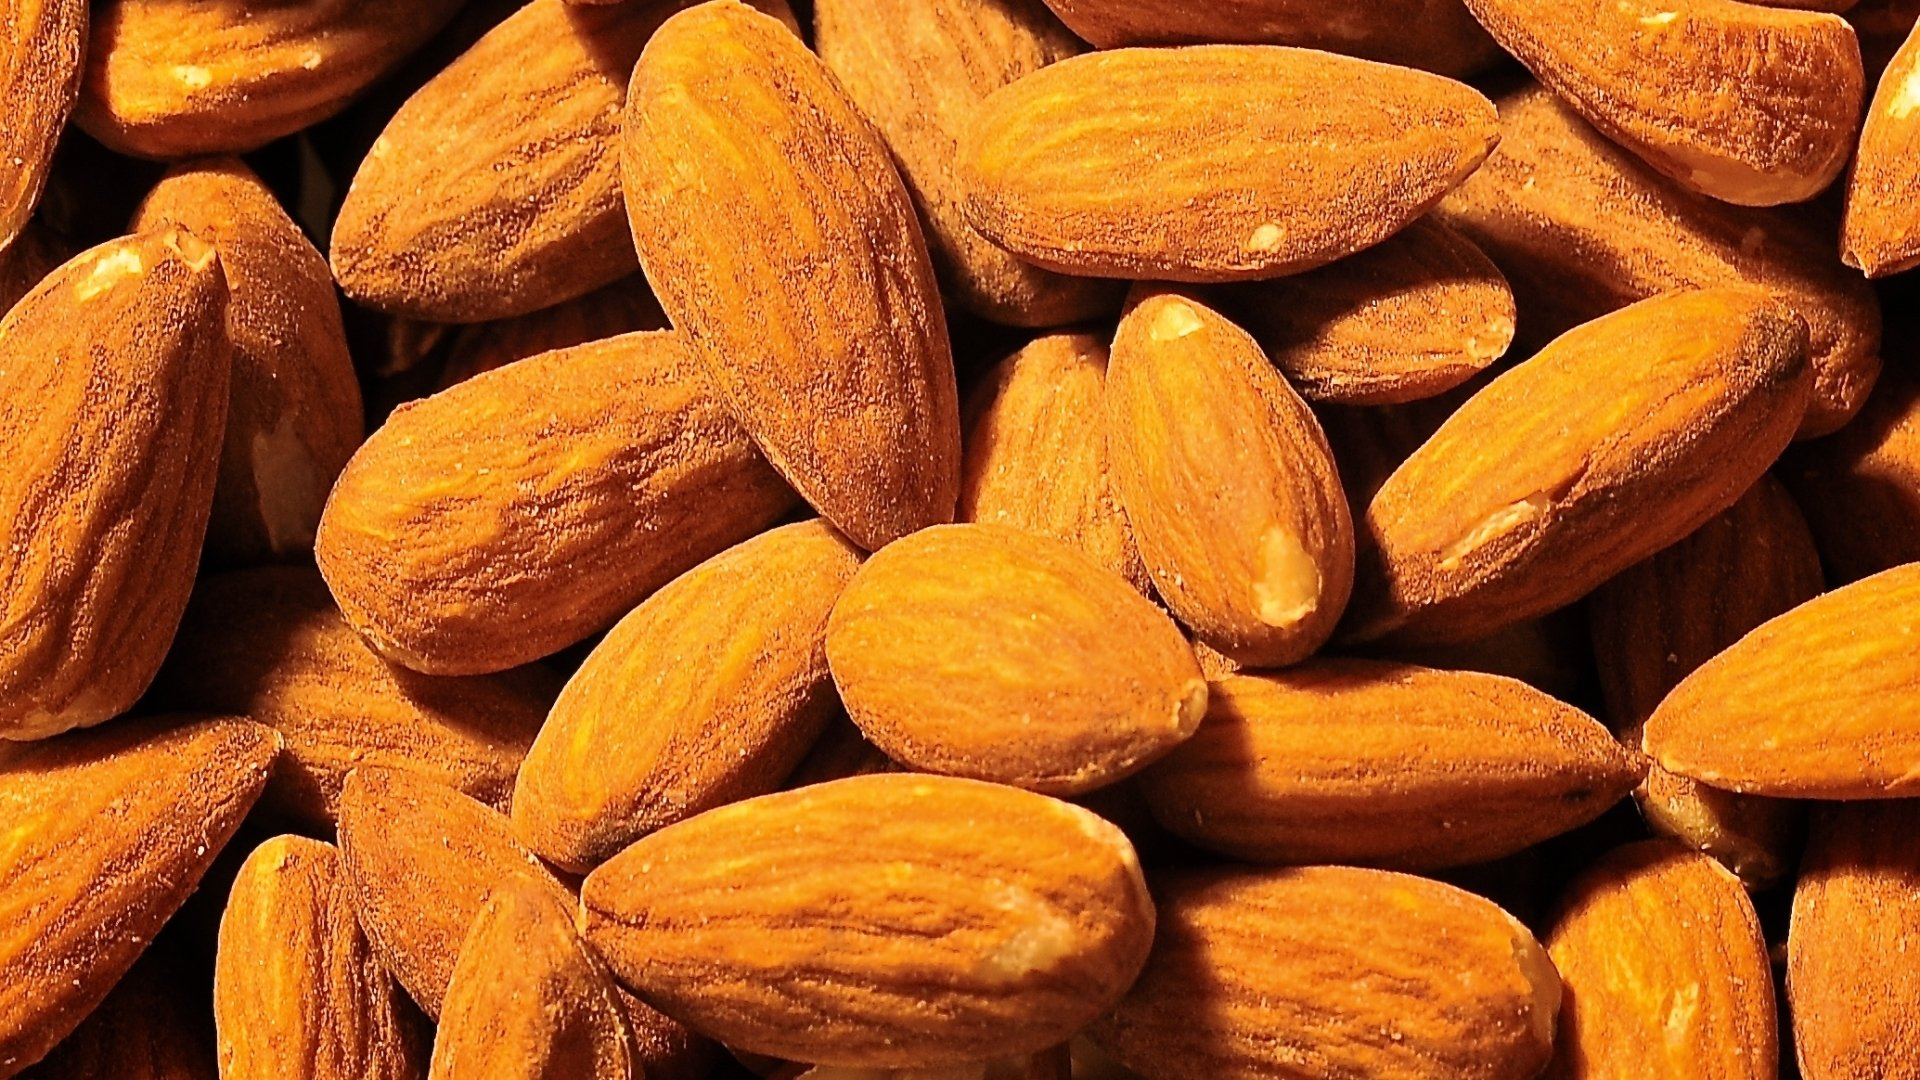 almond hd wallpaper | background image | 1920x1080 | id:469742